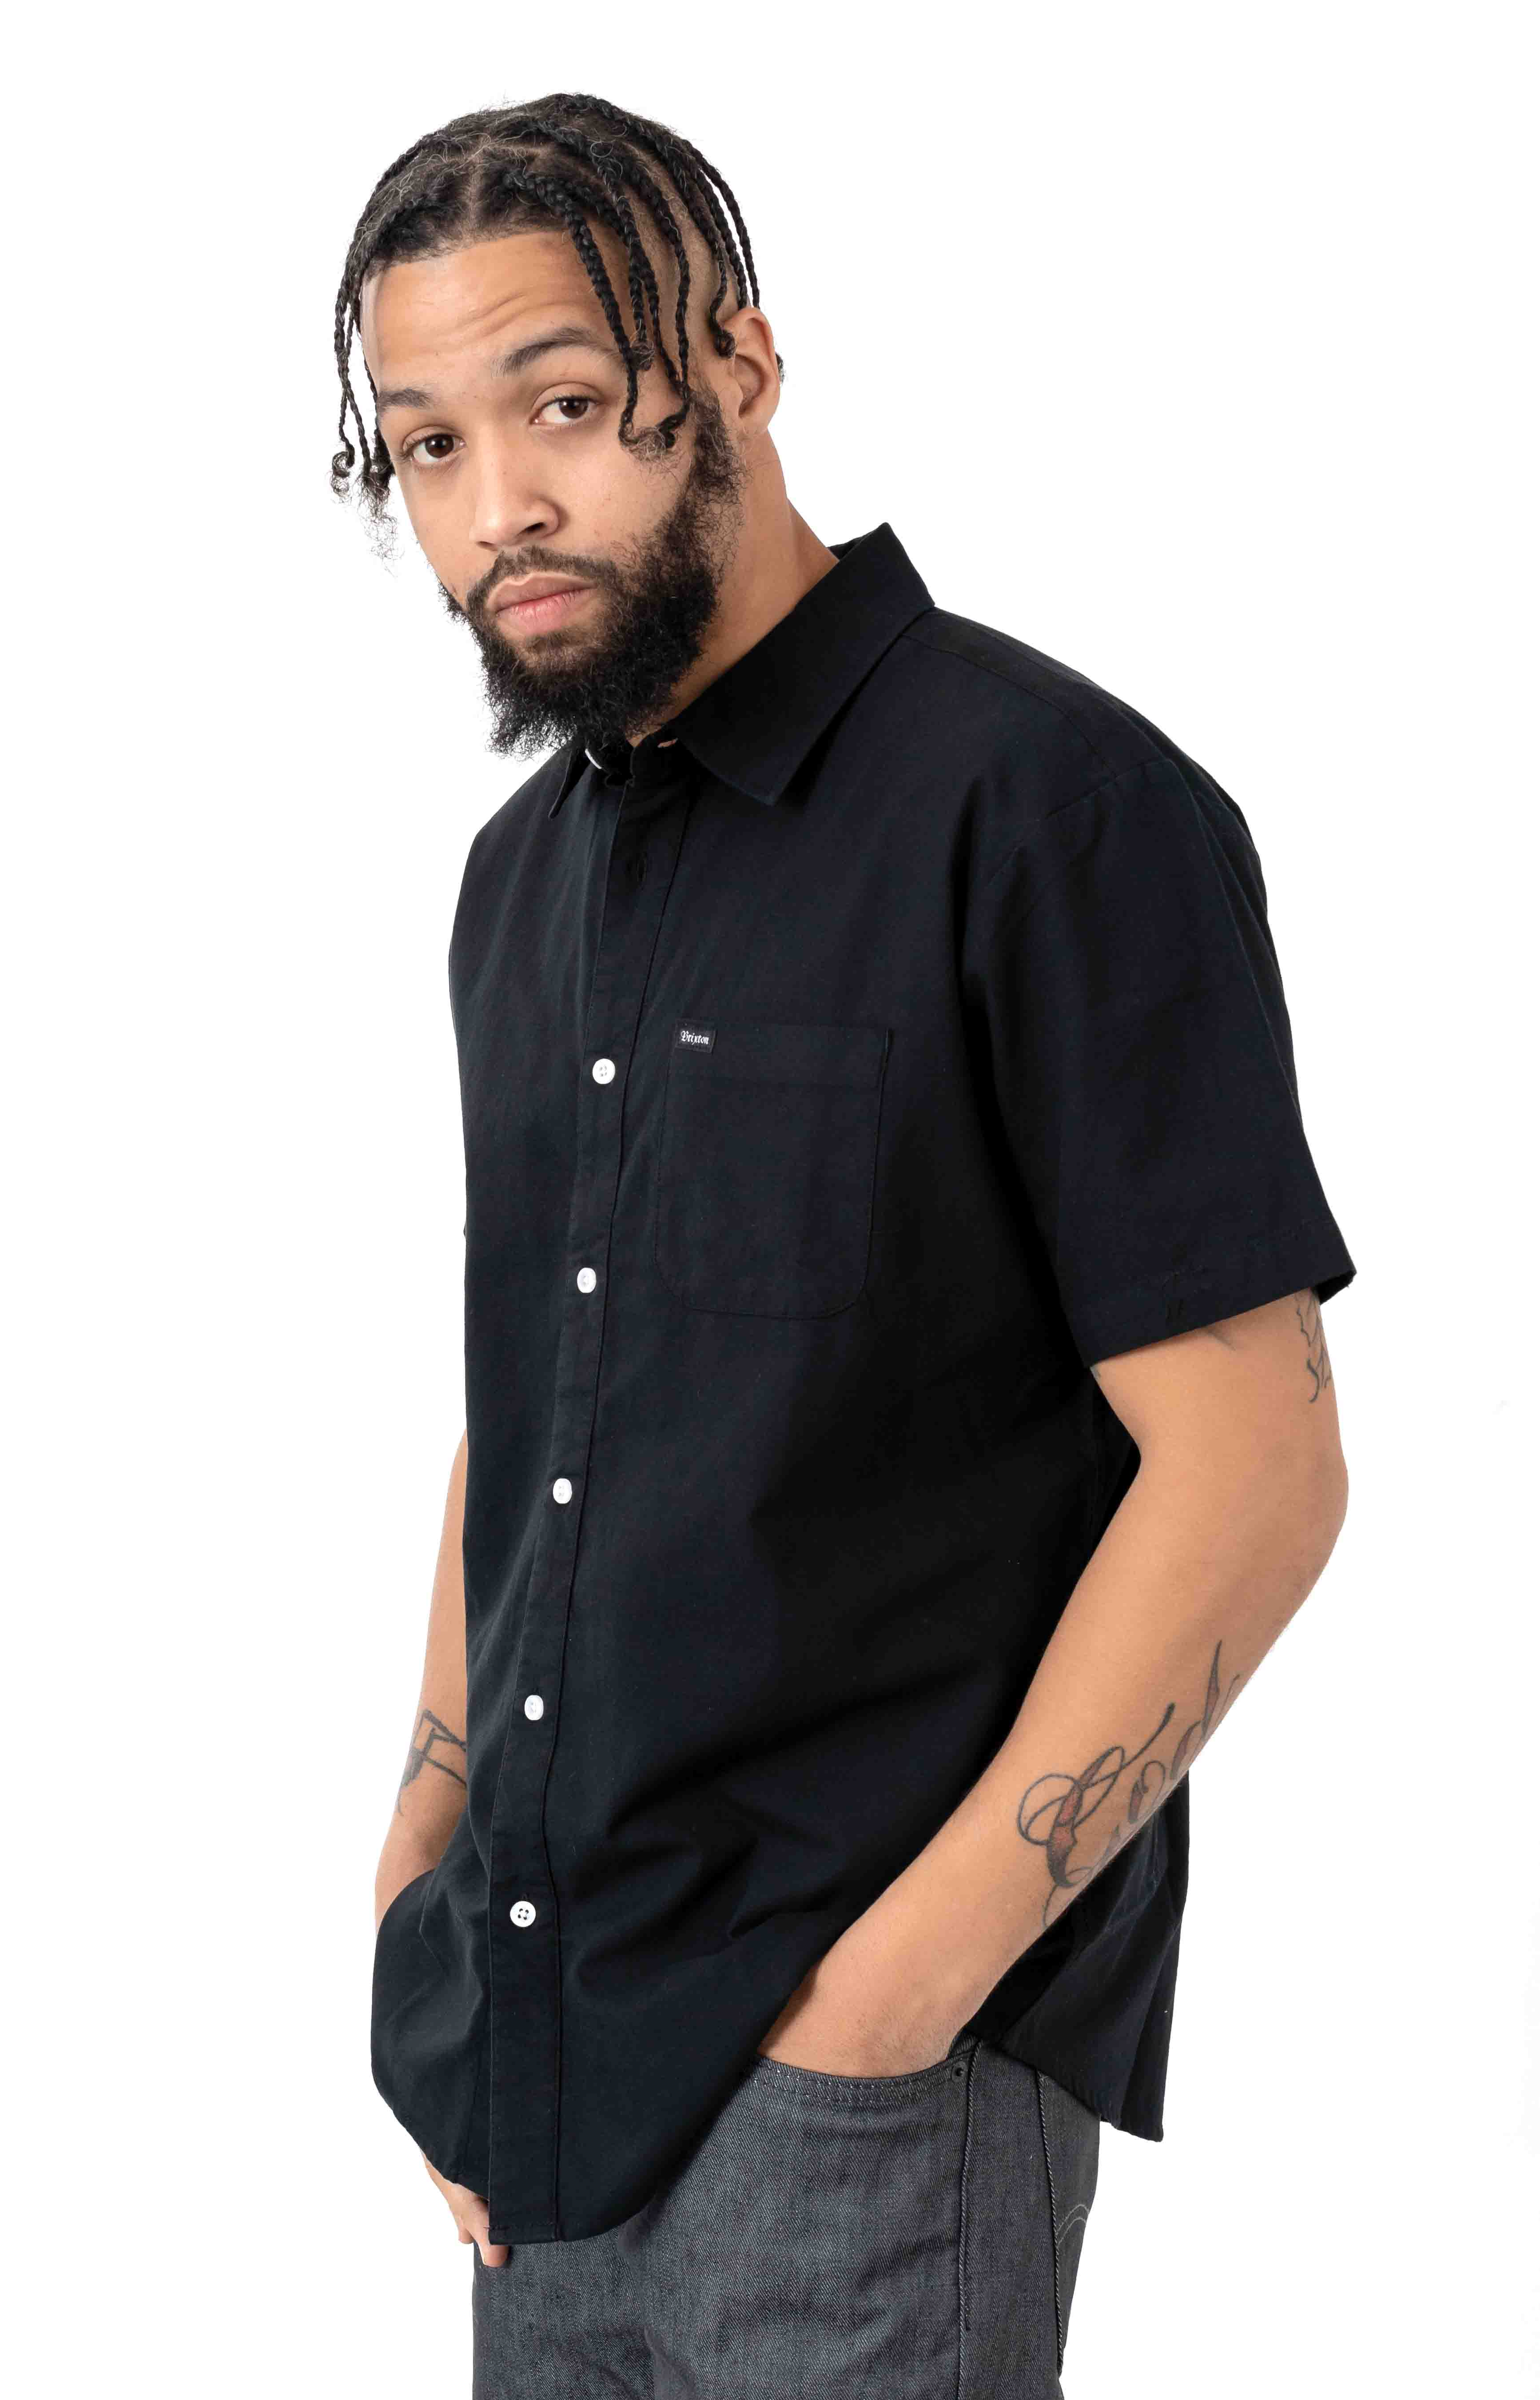 Charter Oxford S/S Button-Up Shirt - Black 2